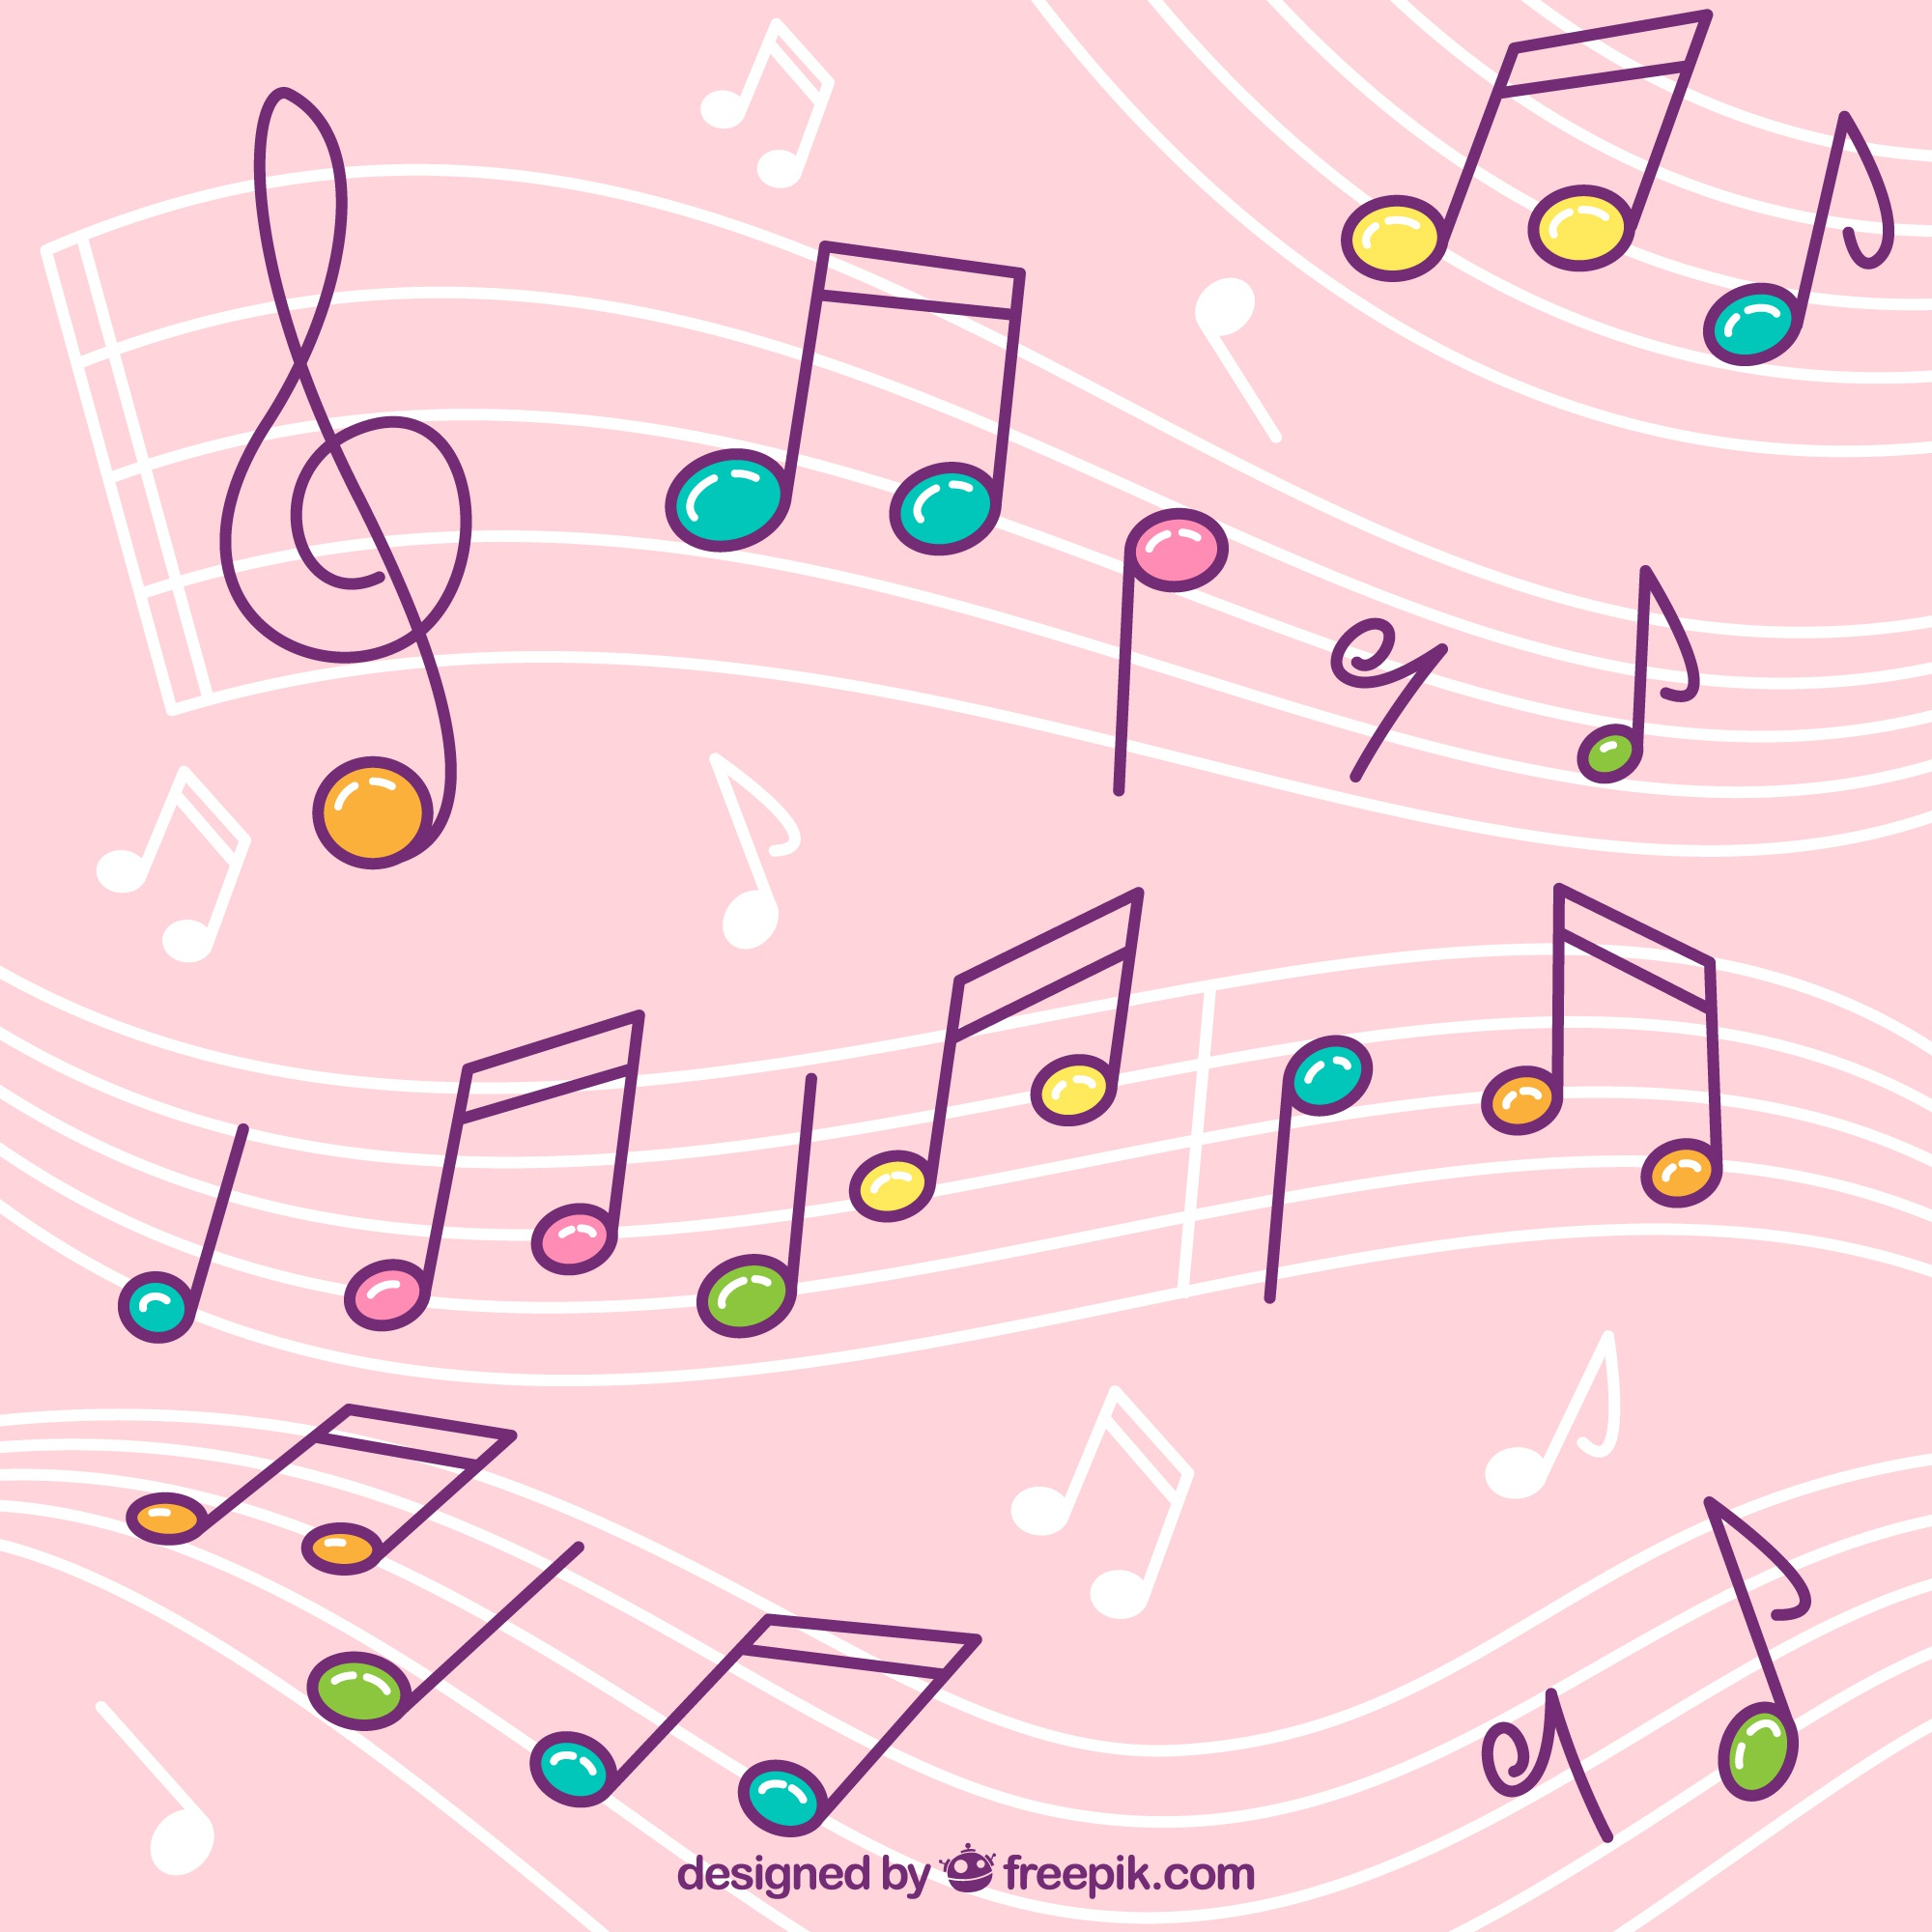 Pink background of pentagrams with colorful musical notes